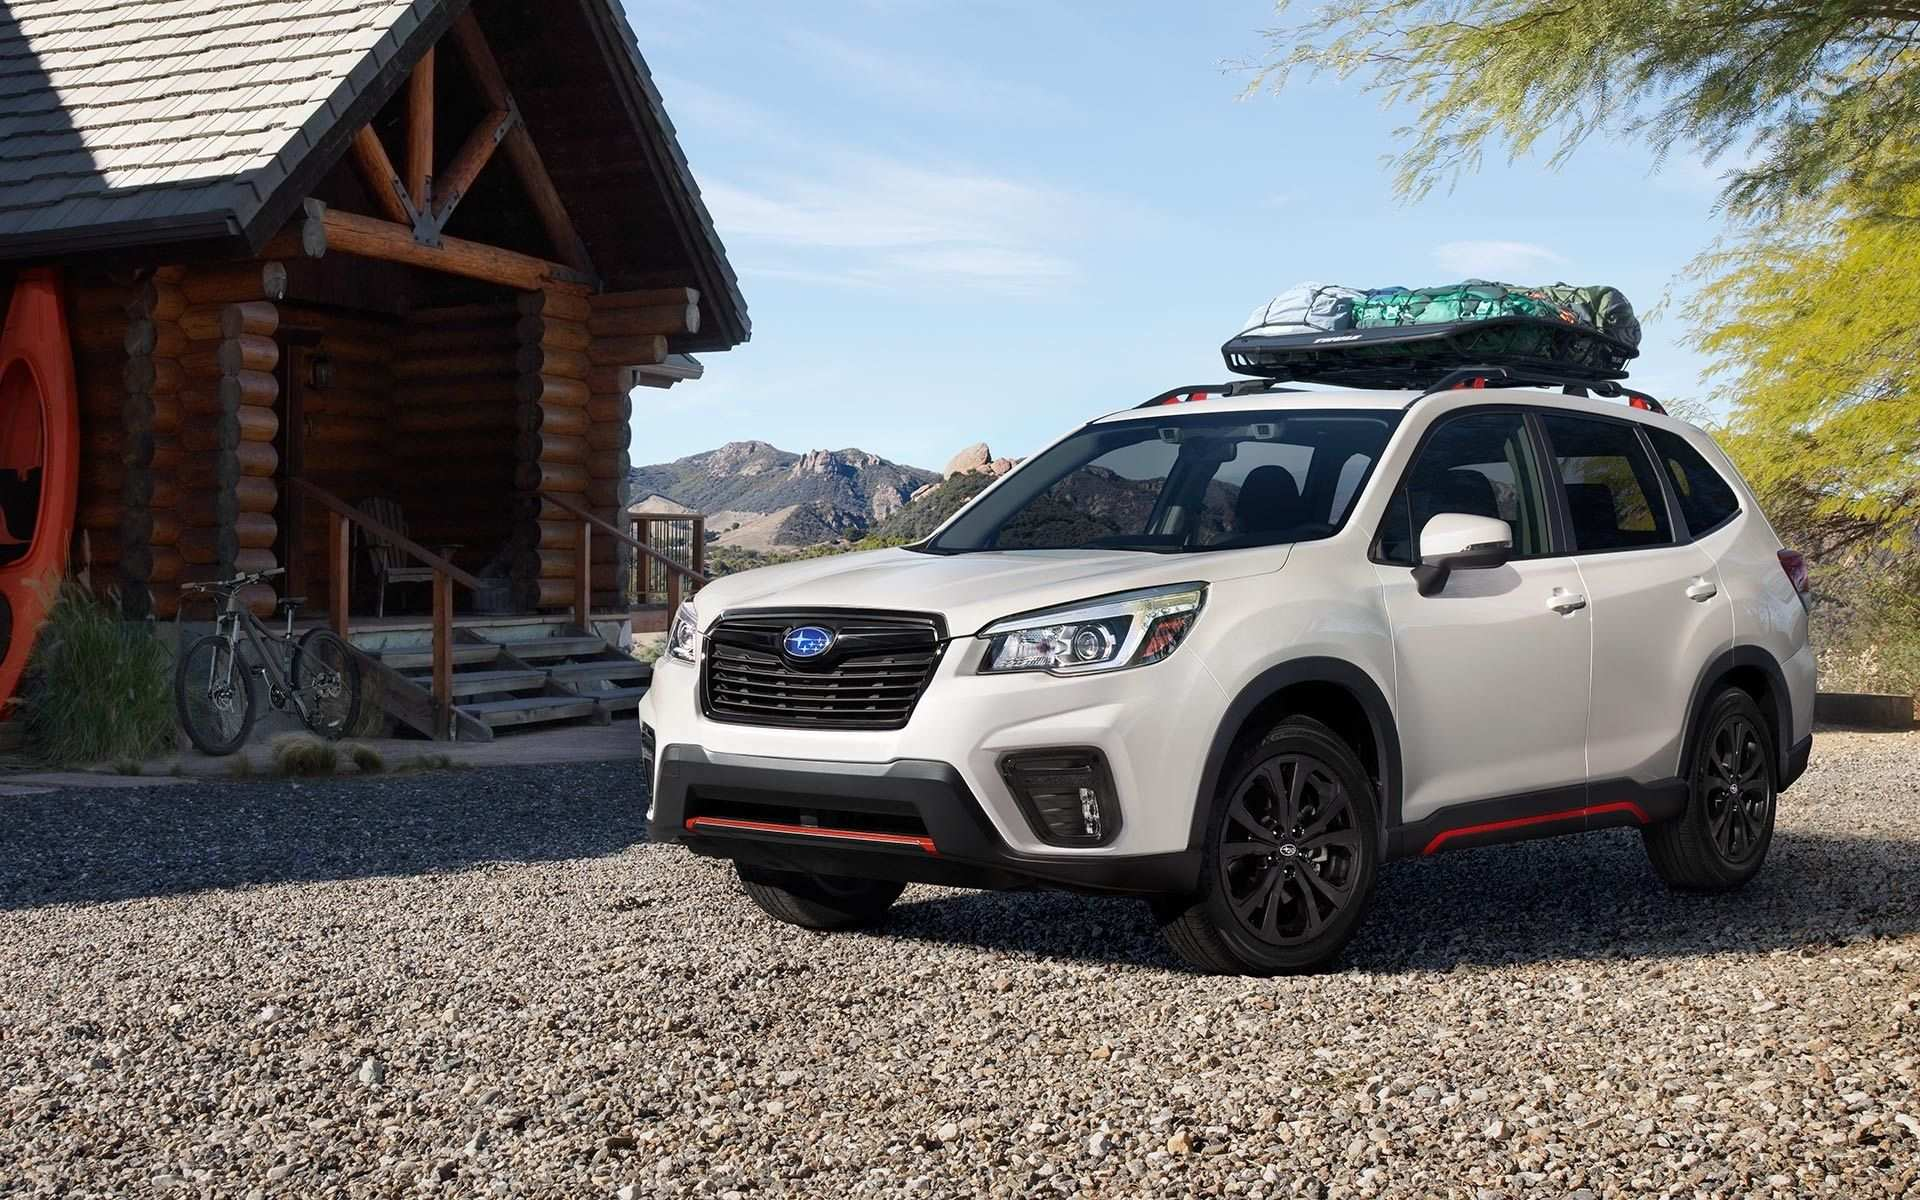 59 New Subaru Baja 2019 Photos